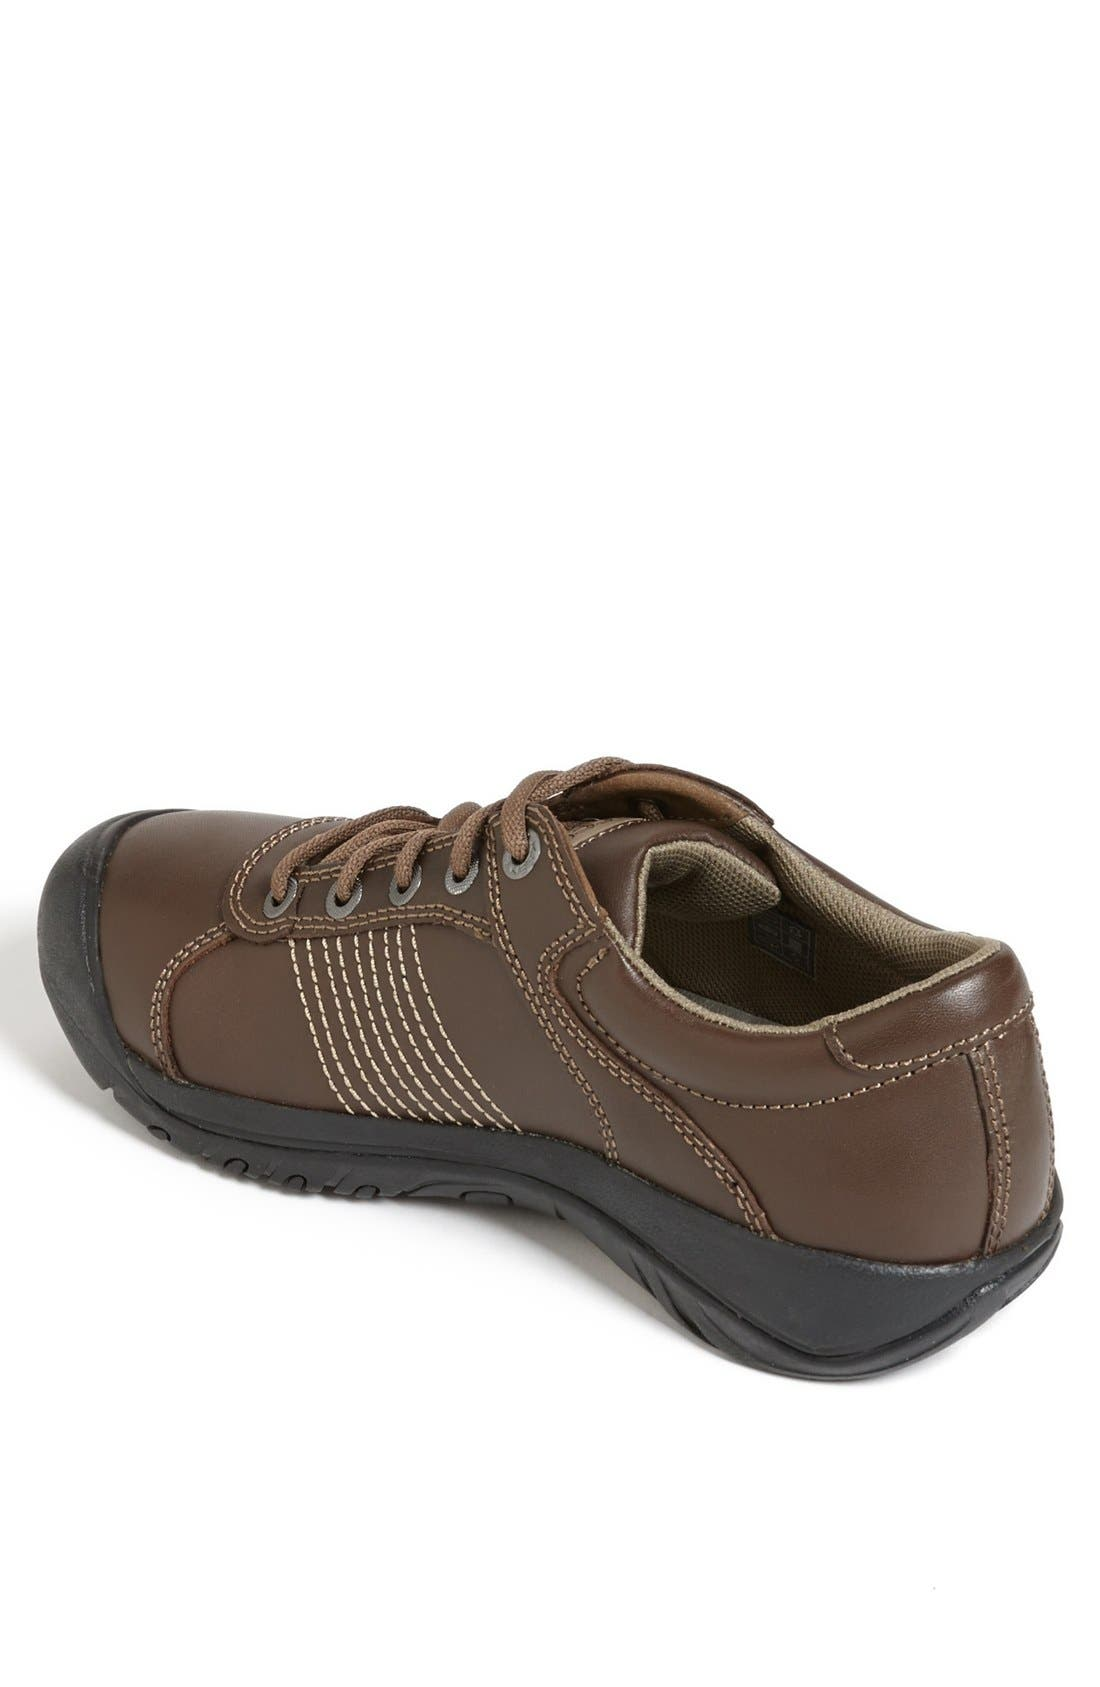 Alternate Image 2  - Keen 'Finlay' Leather Oxford